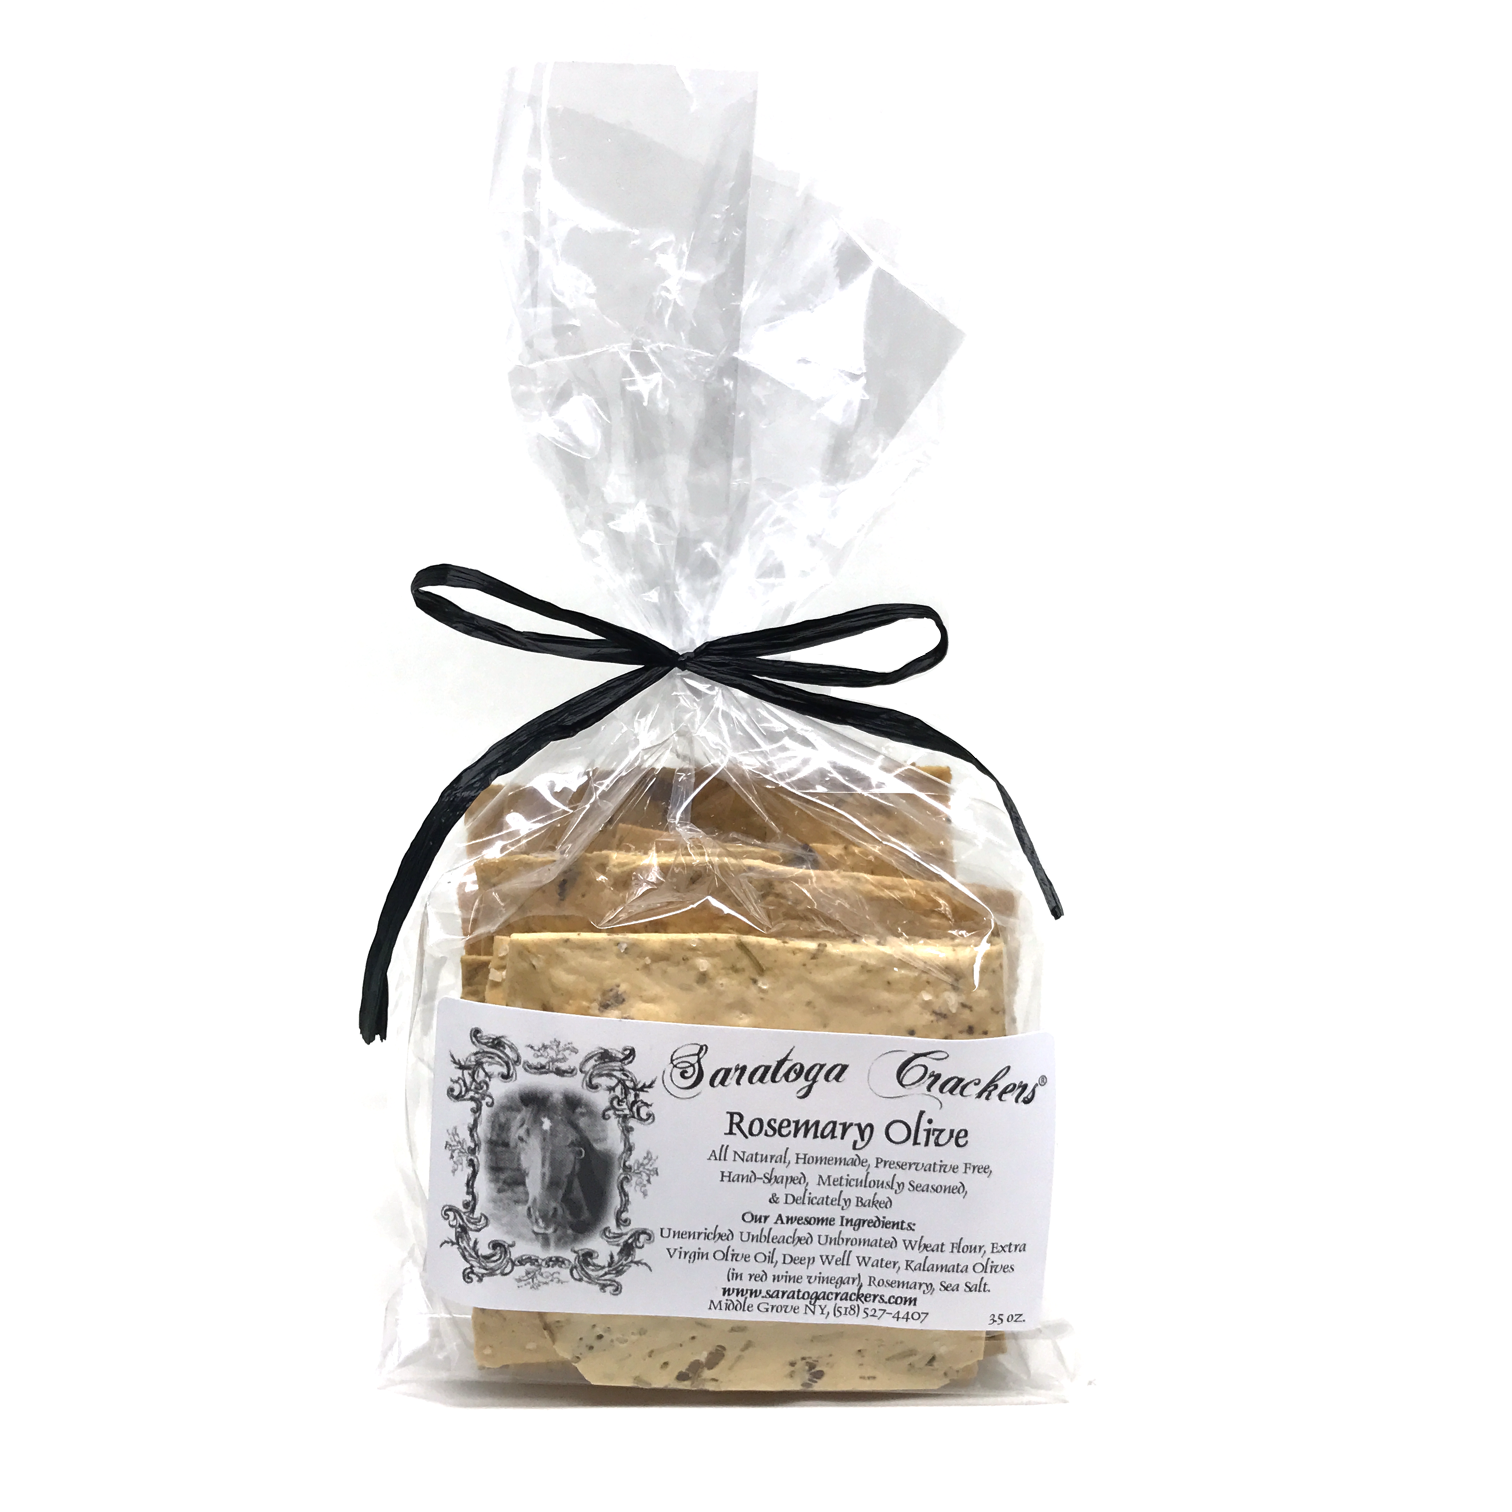 Handmade, artisan, clean, delicious, savory, Saratoga. Saratoga Crackers are the quintessential Saratoga treat!  Serve them at your next formal party, or snack on them while you warm up in front of the fire!